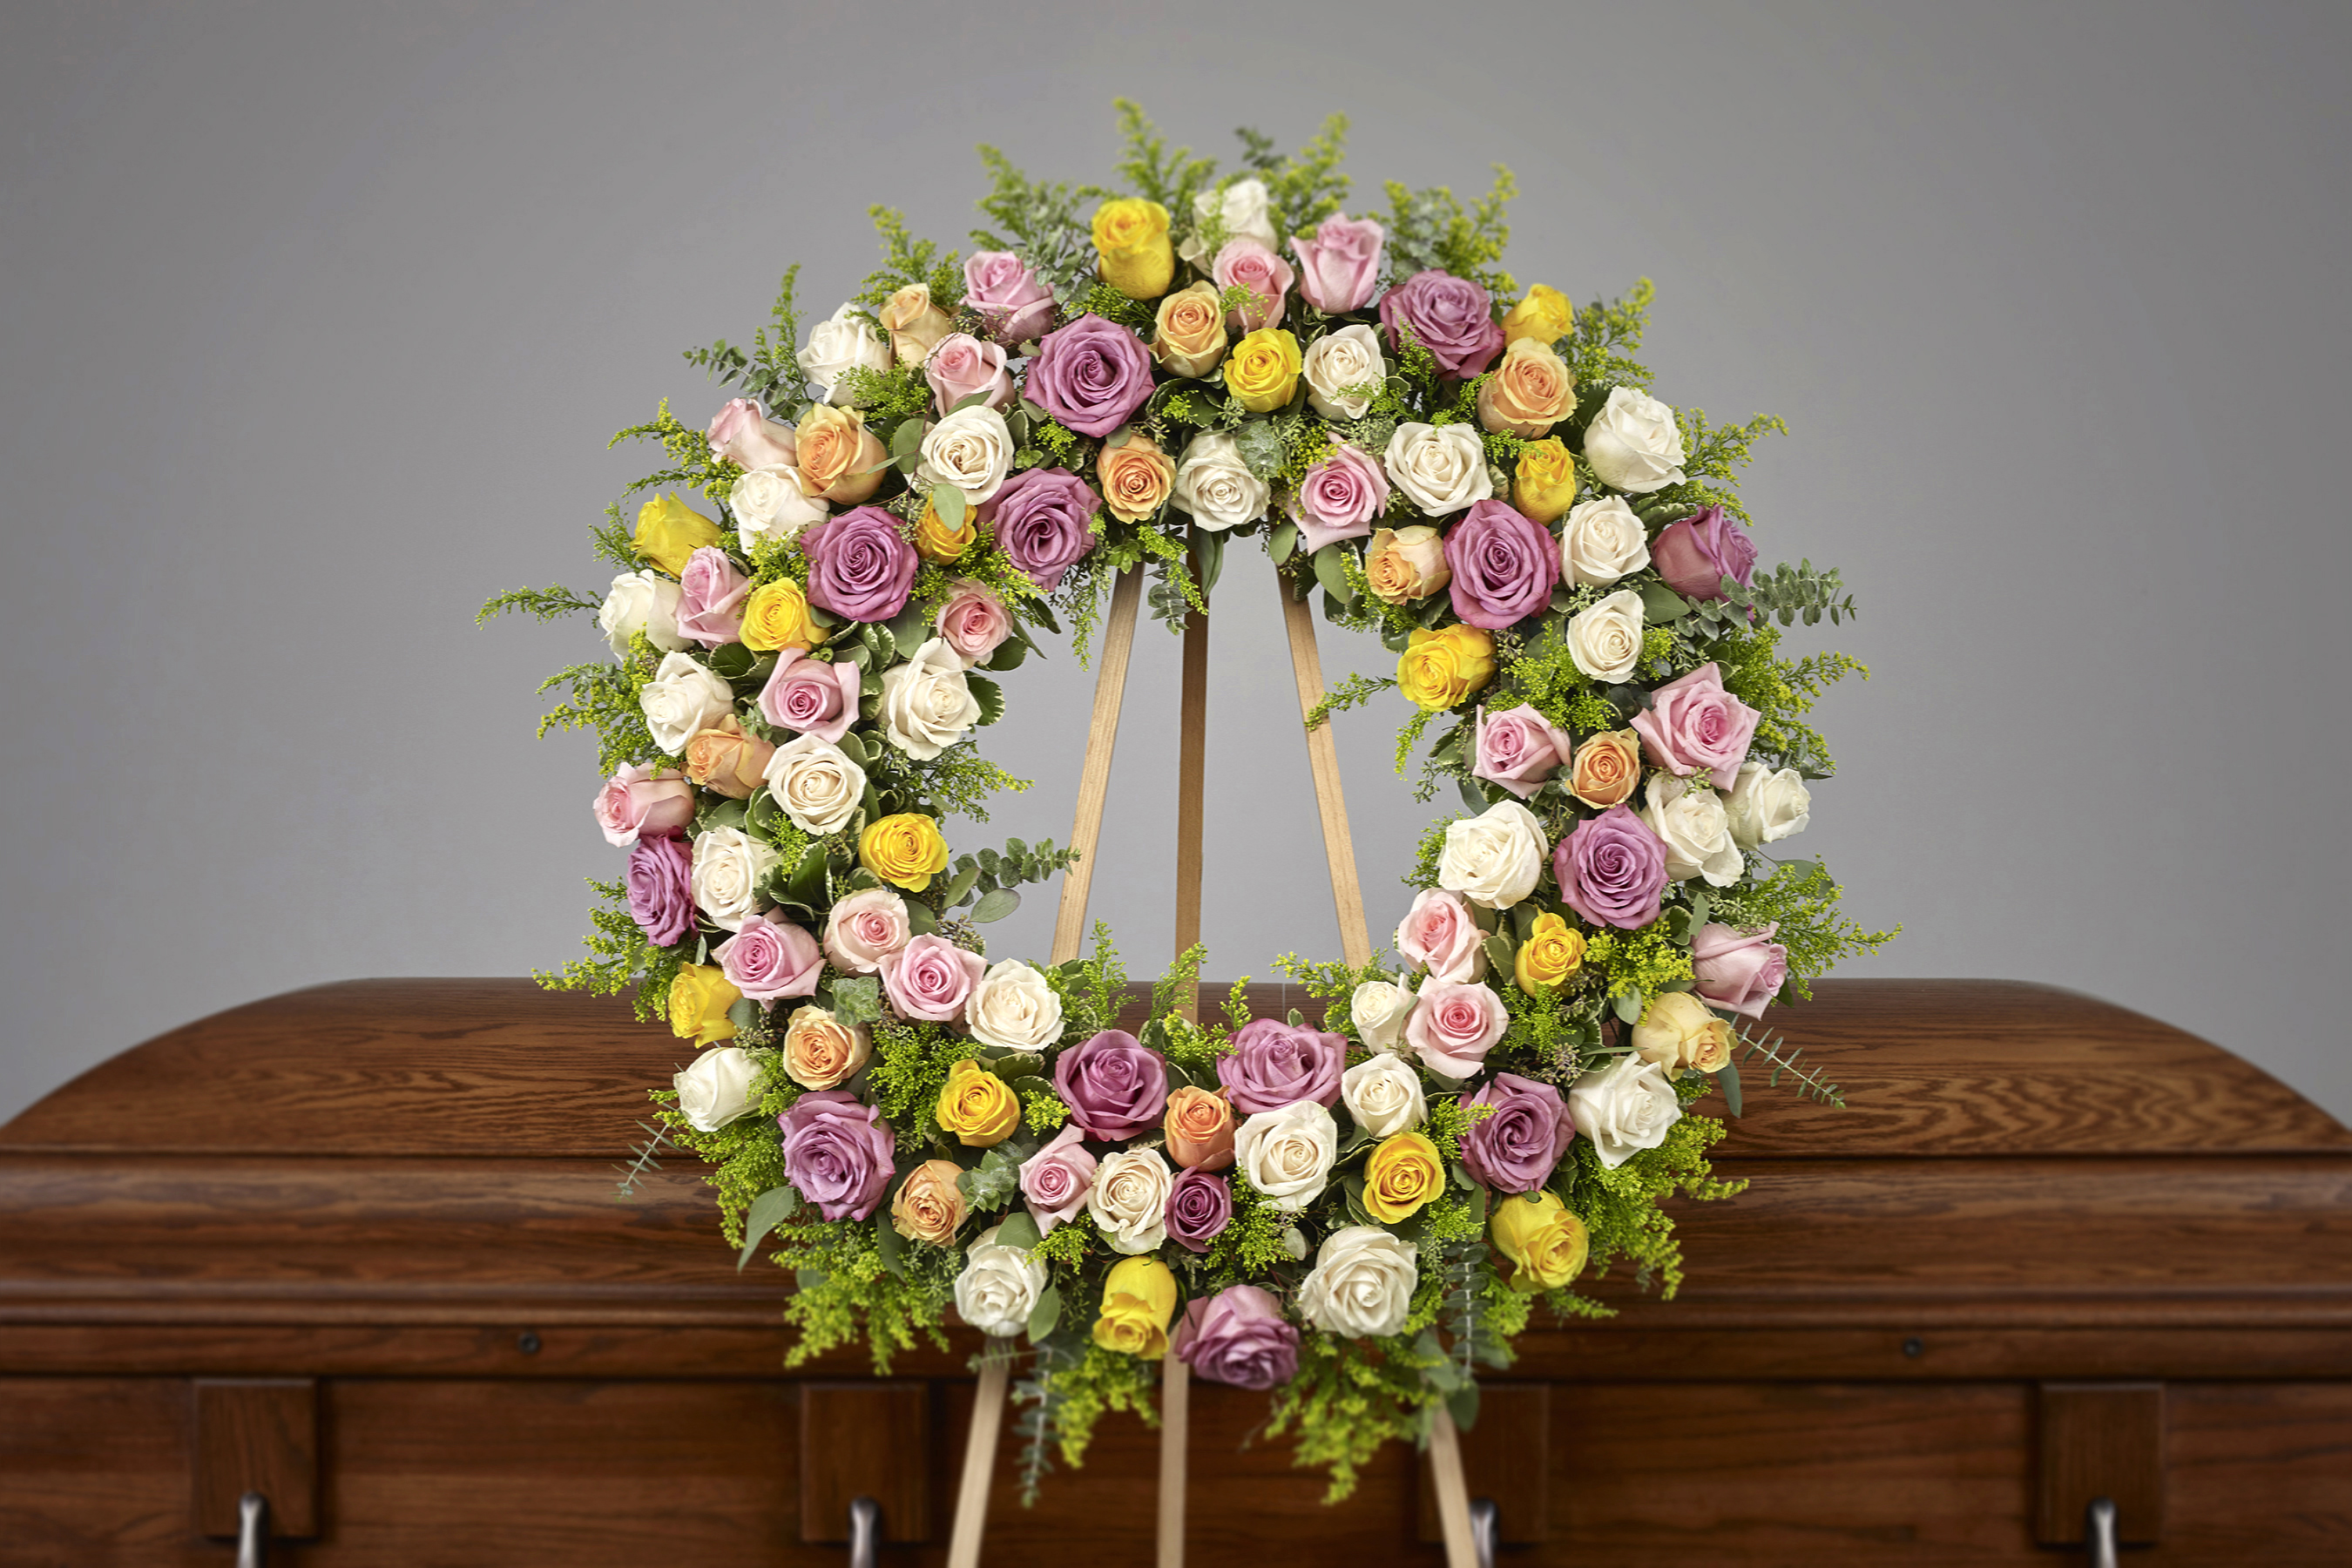 Pastel Rose Wreath - Pastel Rose Wreath